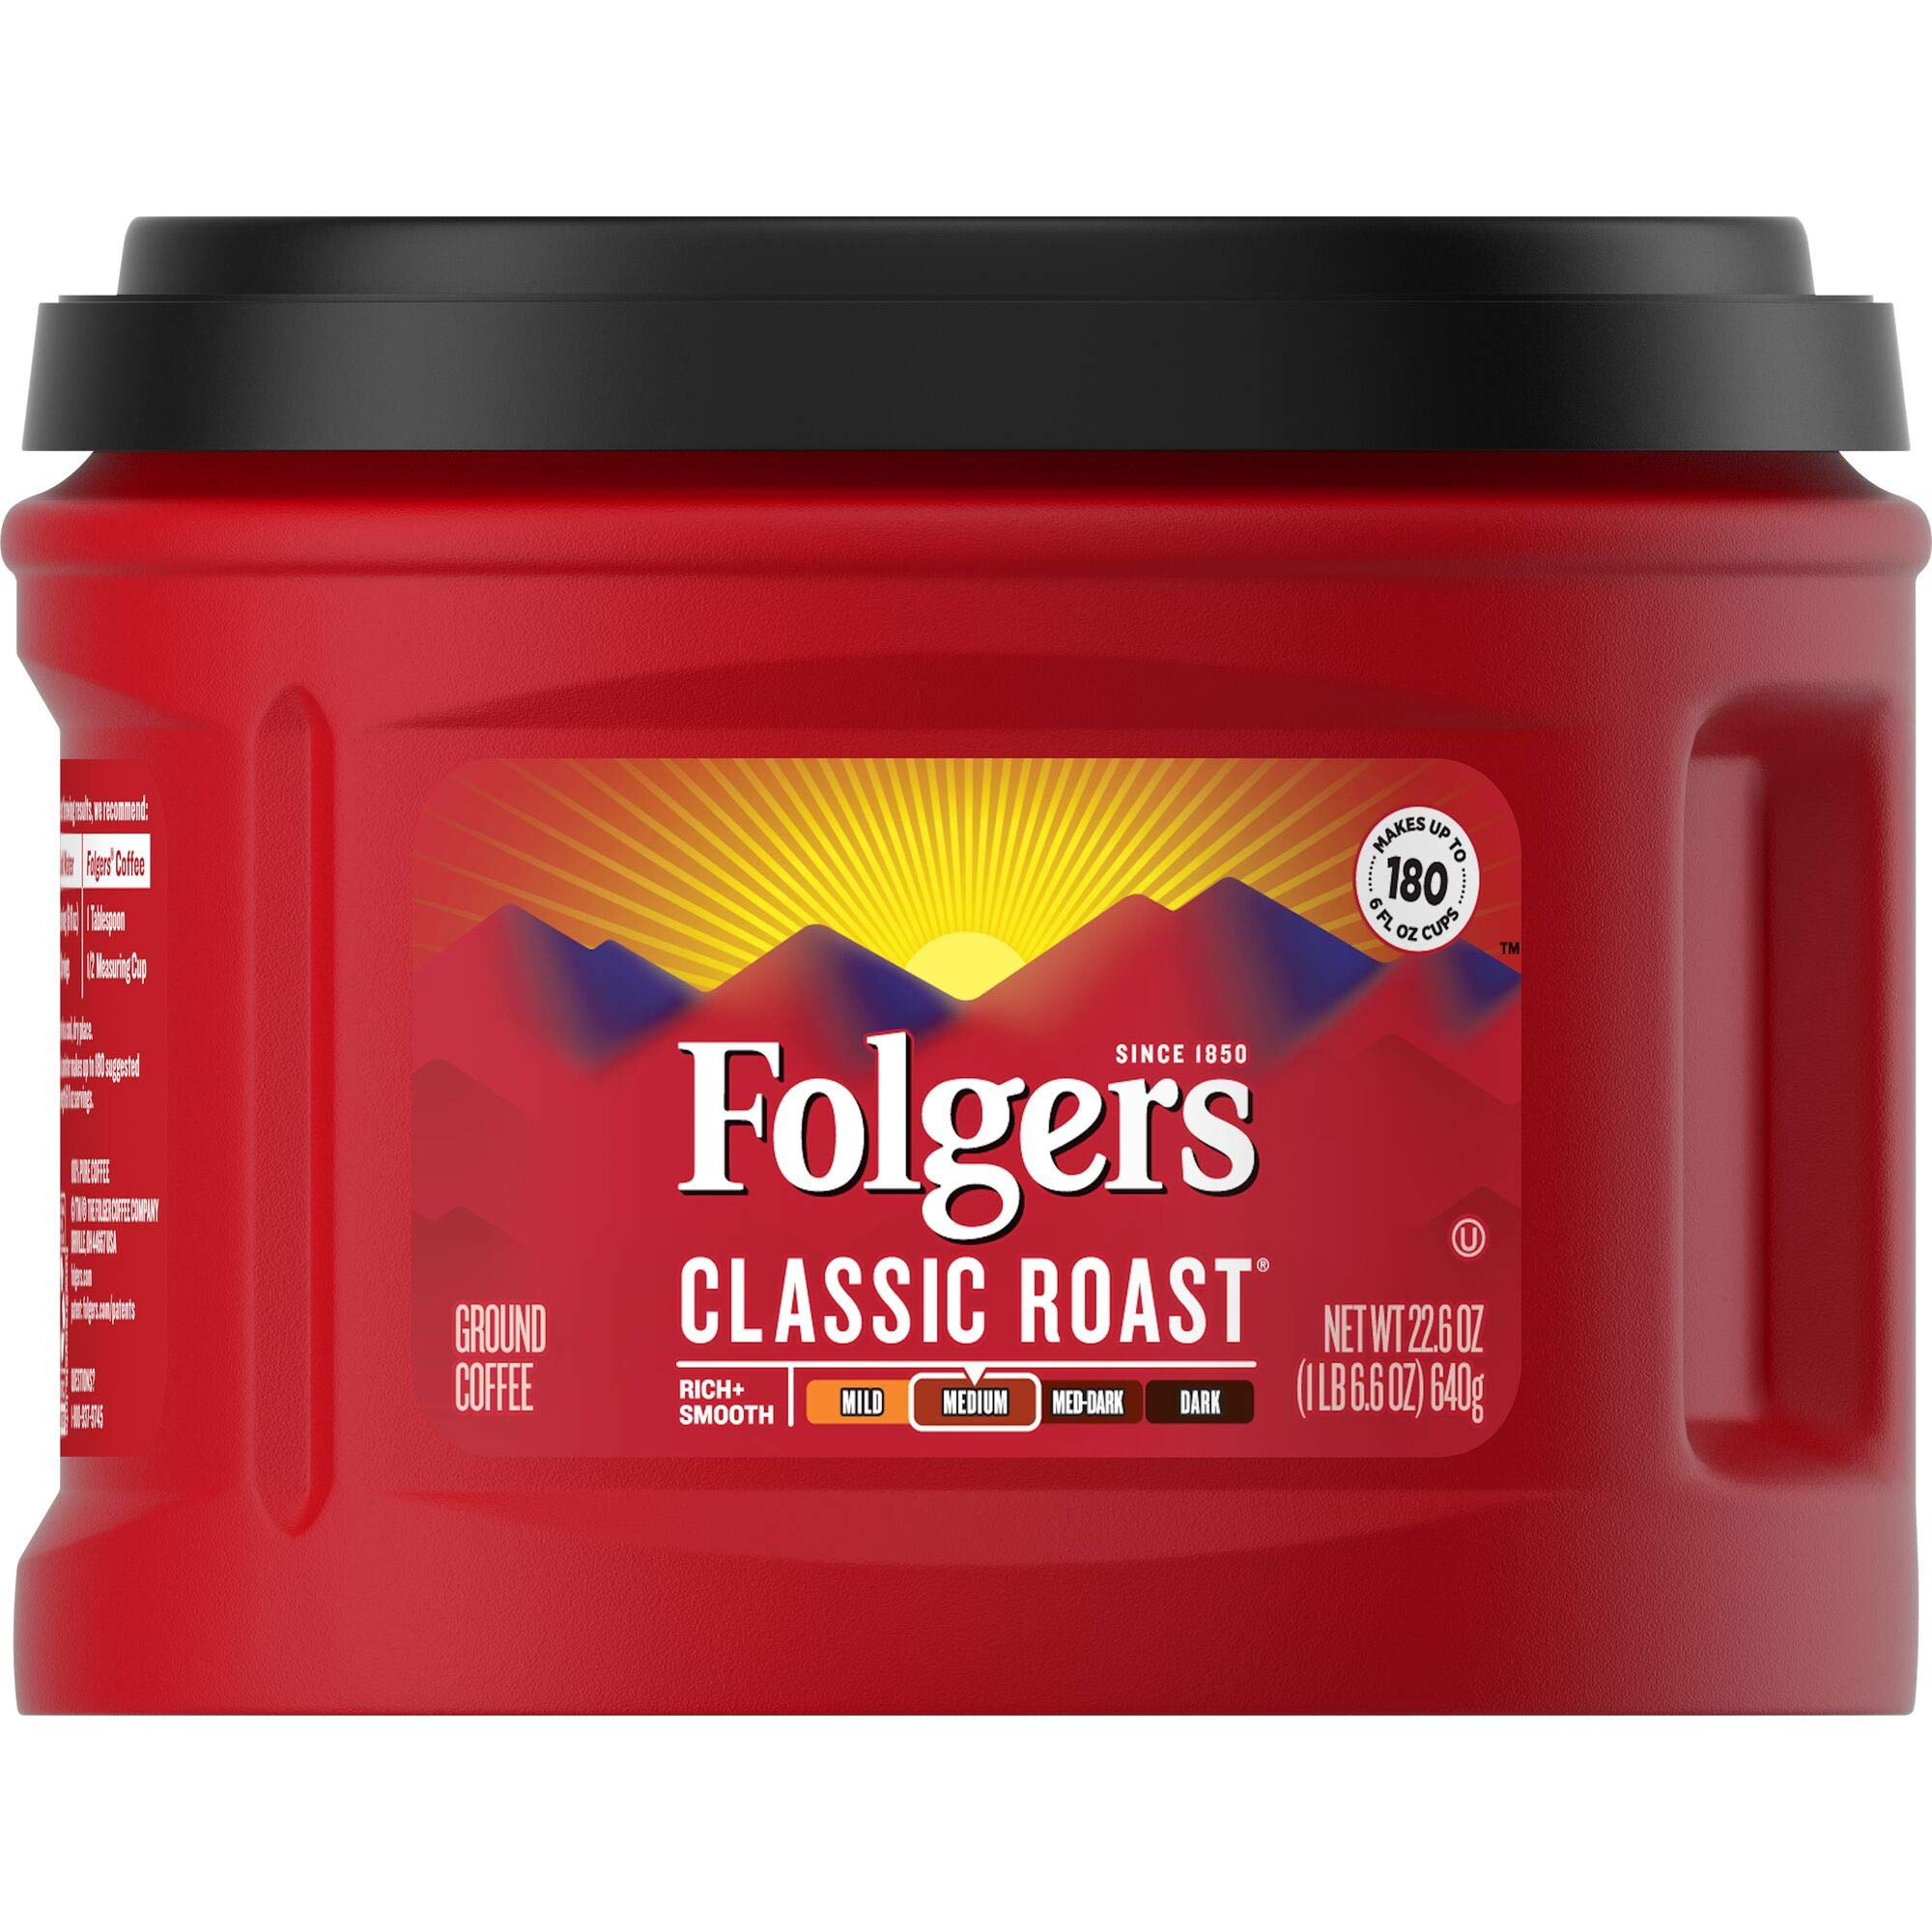 Folgers Classic Roast, Ground Coffee, Medium Roast, 22.6 Ounce, 3 Count, Packaging May Vary by Folgers